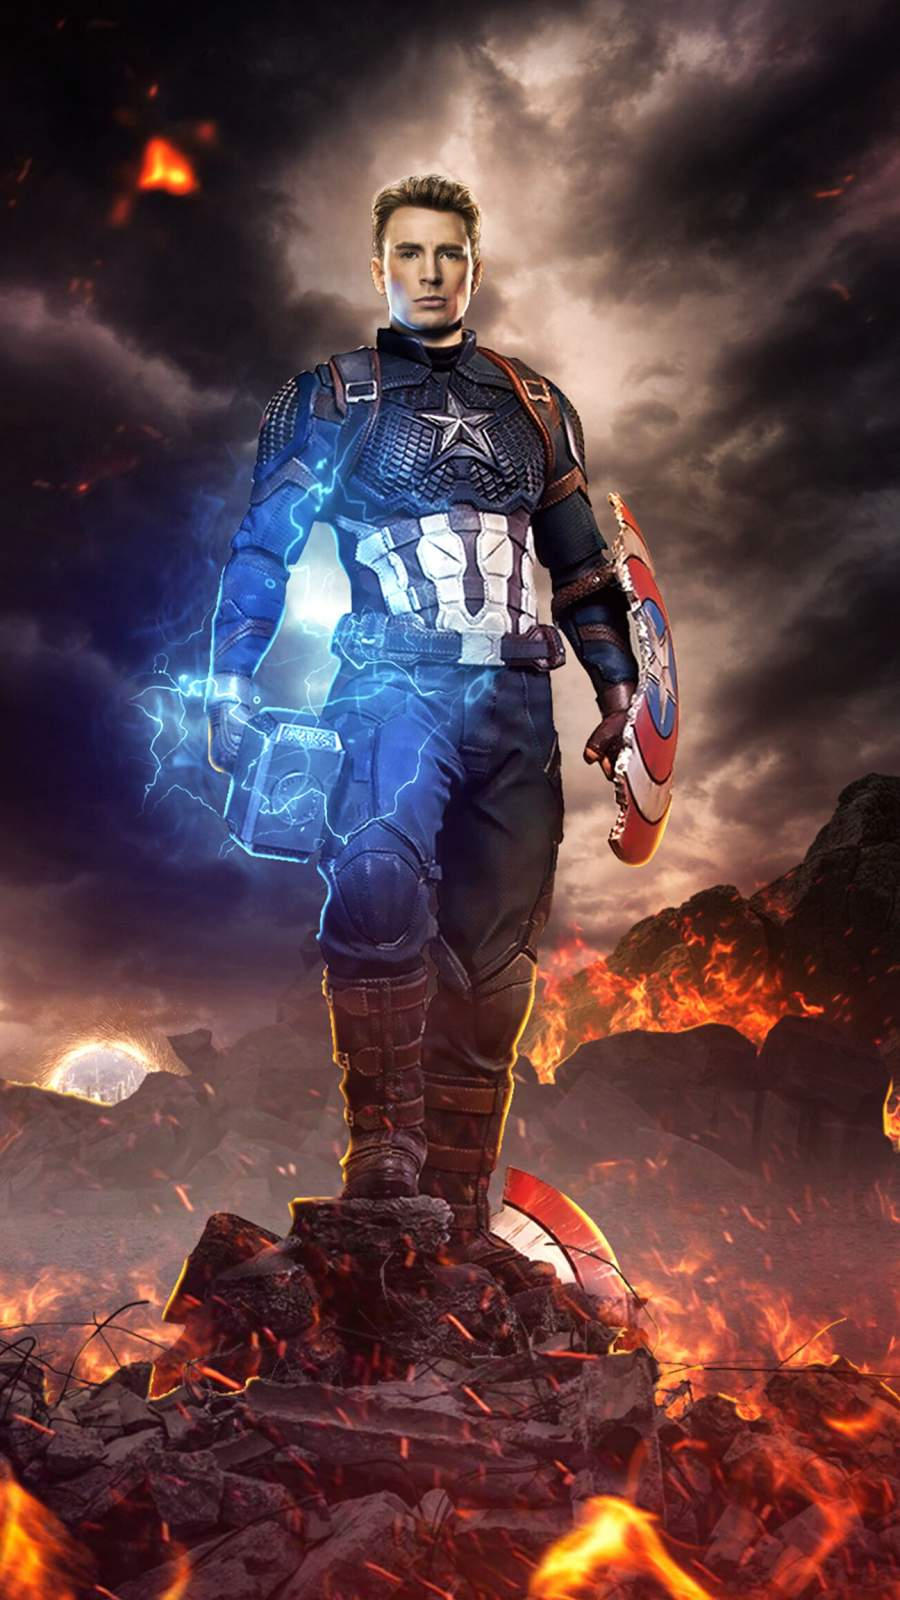 Captain America Final Battle Worthy Mjolnir iPhone Wallpaper